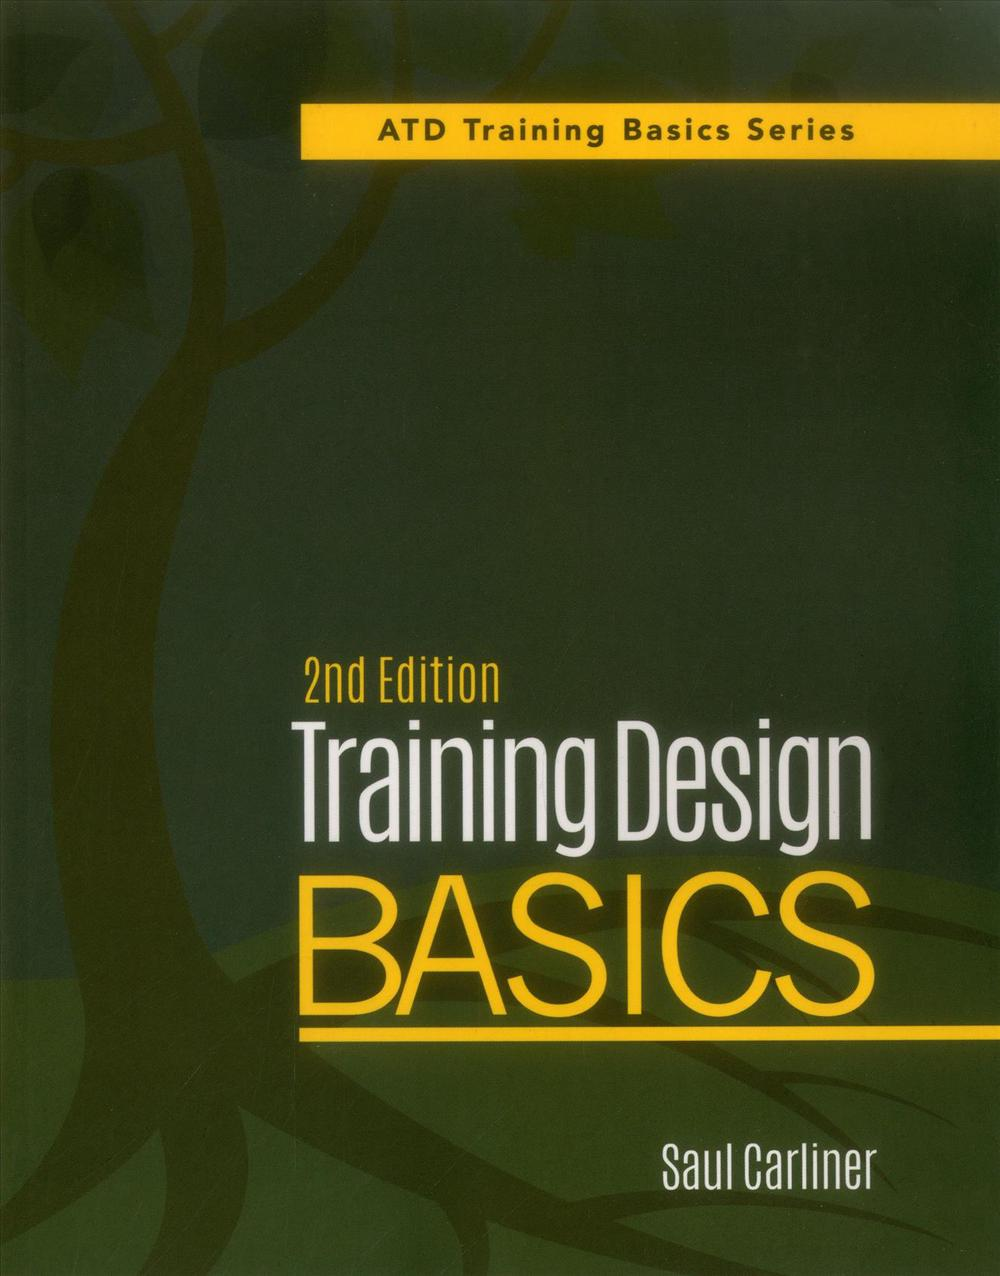 Training Design Basics (Training Basics) by Saul Carliner, ISBN: 9781562869250